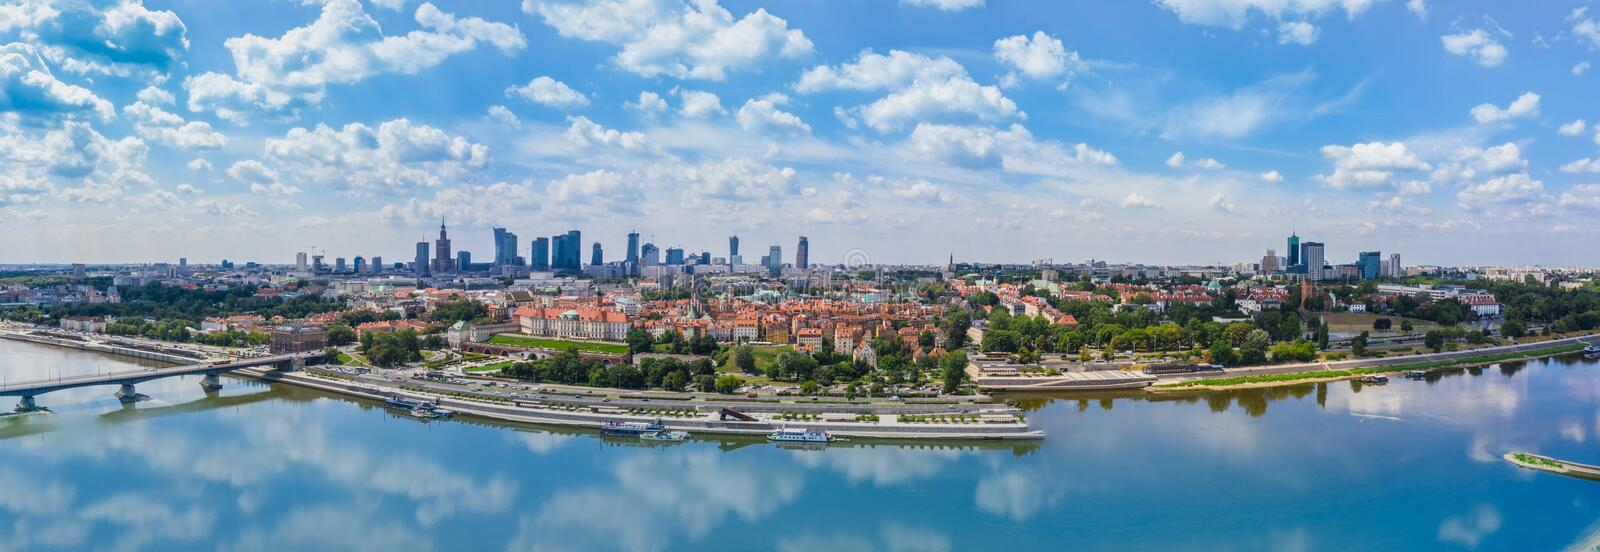 Beautiful panoramic view over the roofs of the Old Town to the Center of Warsaw, the Palace of culture and science, modern royalty free stock photography